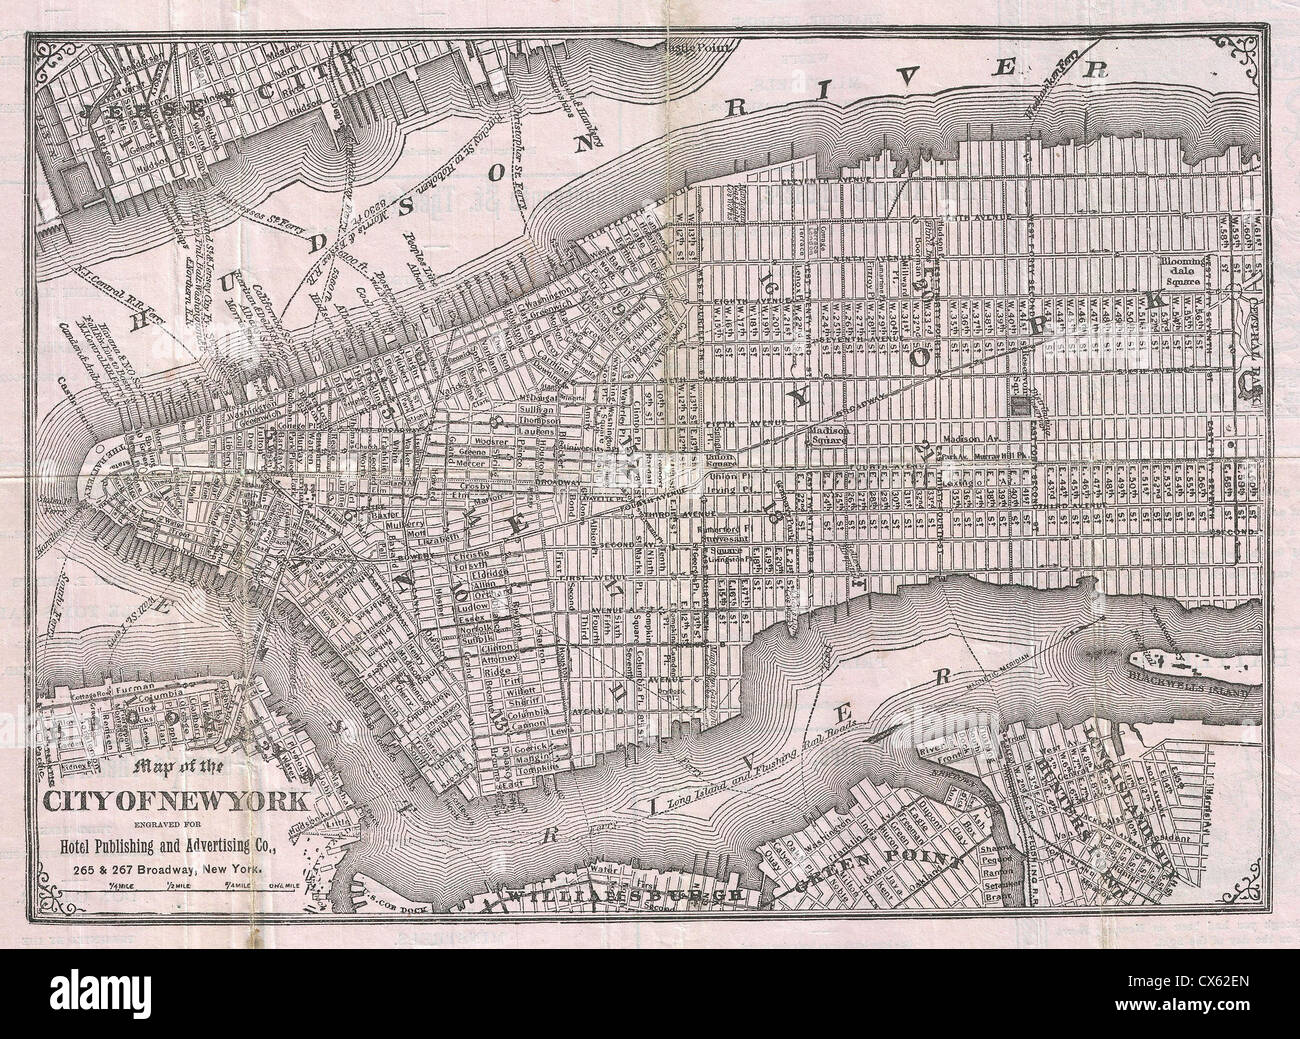 1886 Hotel and Theater Advertising Map of New York City - Stock Image